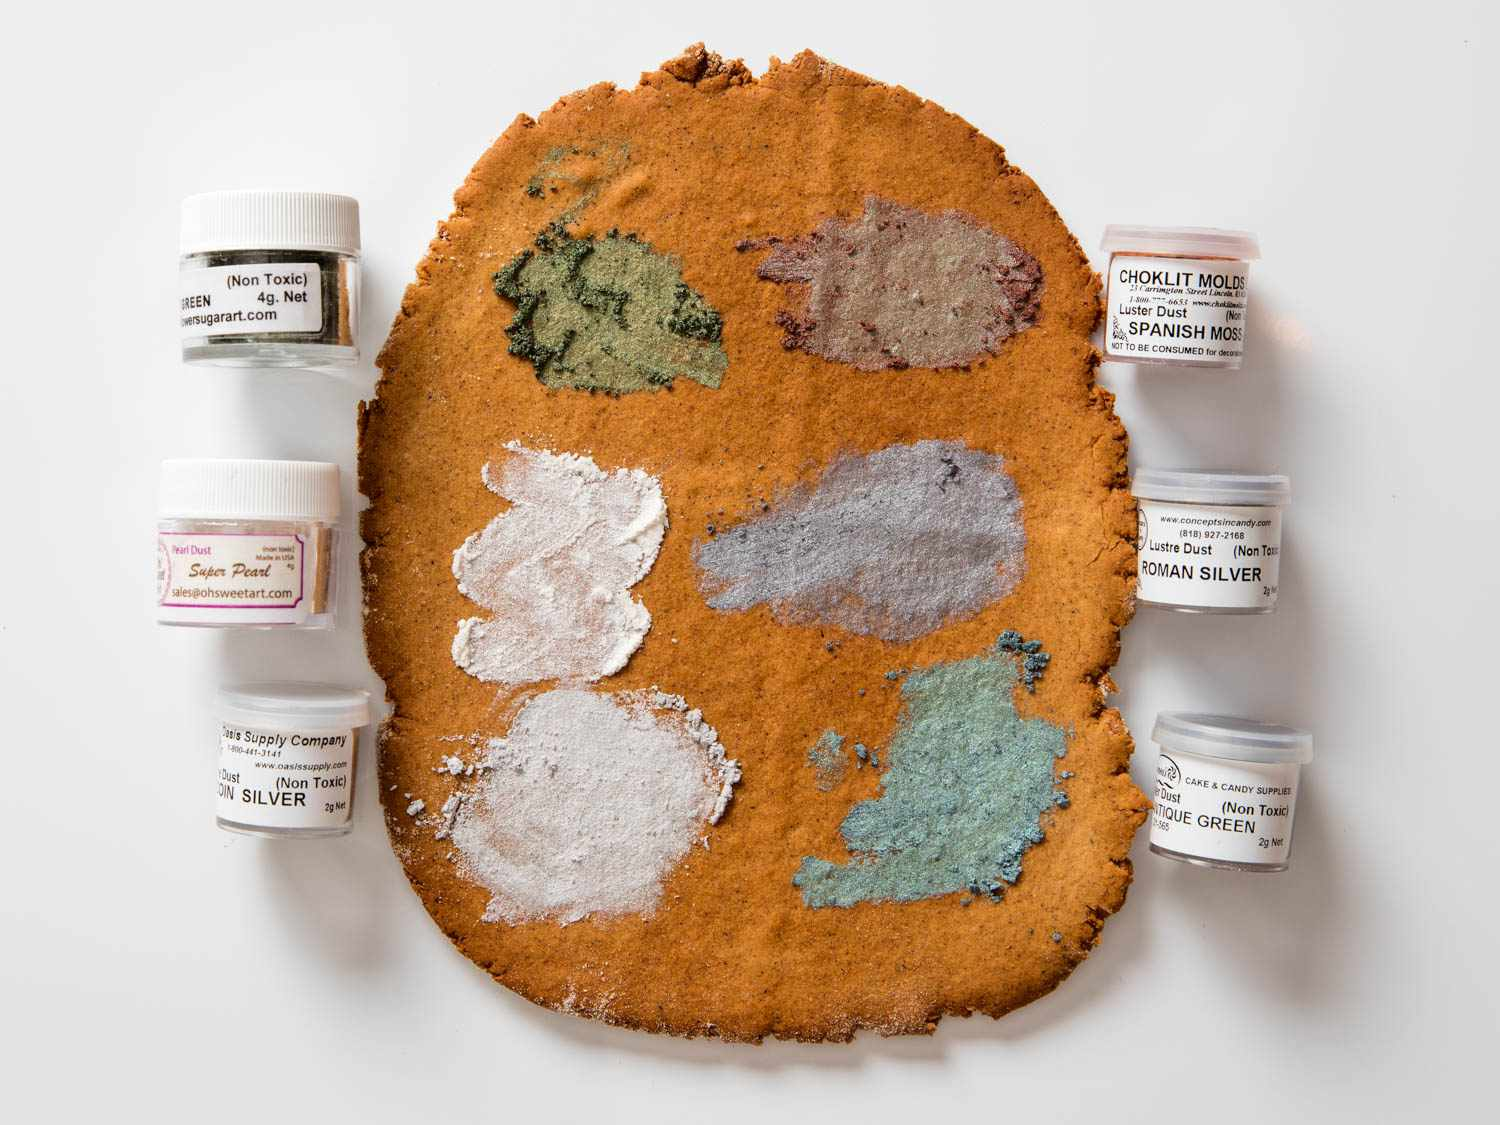 Samples of luster dust in various dull colors, against a slab of gingerbread